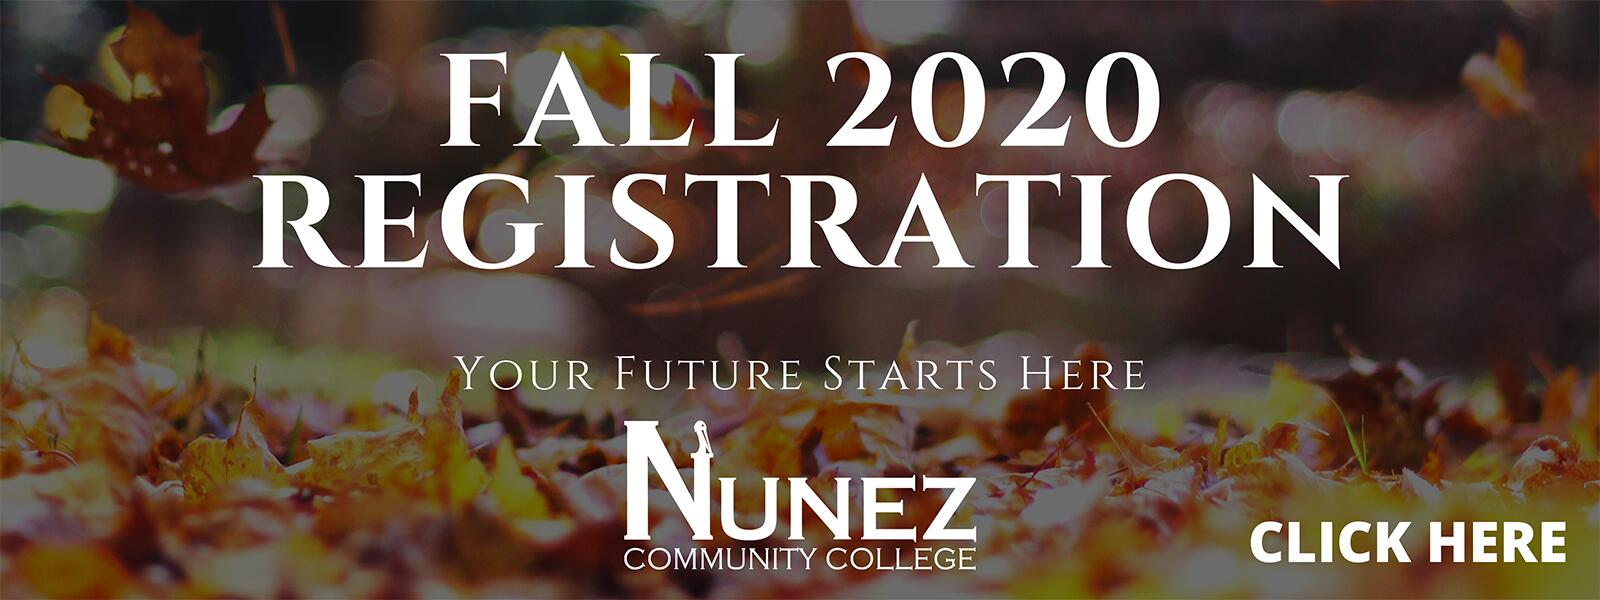 Fall 2020 Registration: - Your Future Starts Here - Click Here